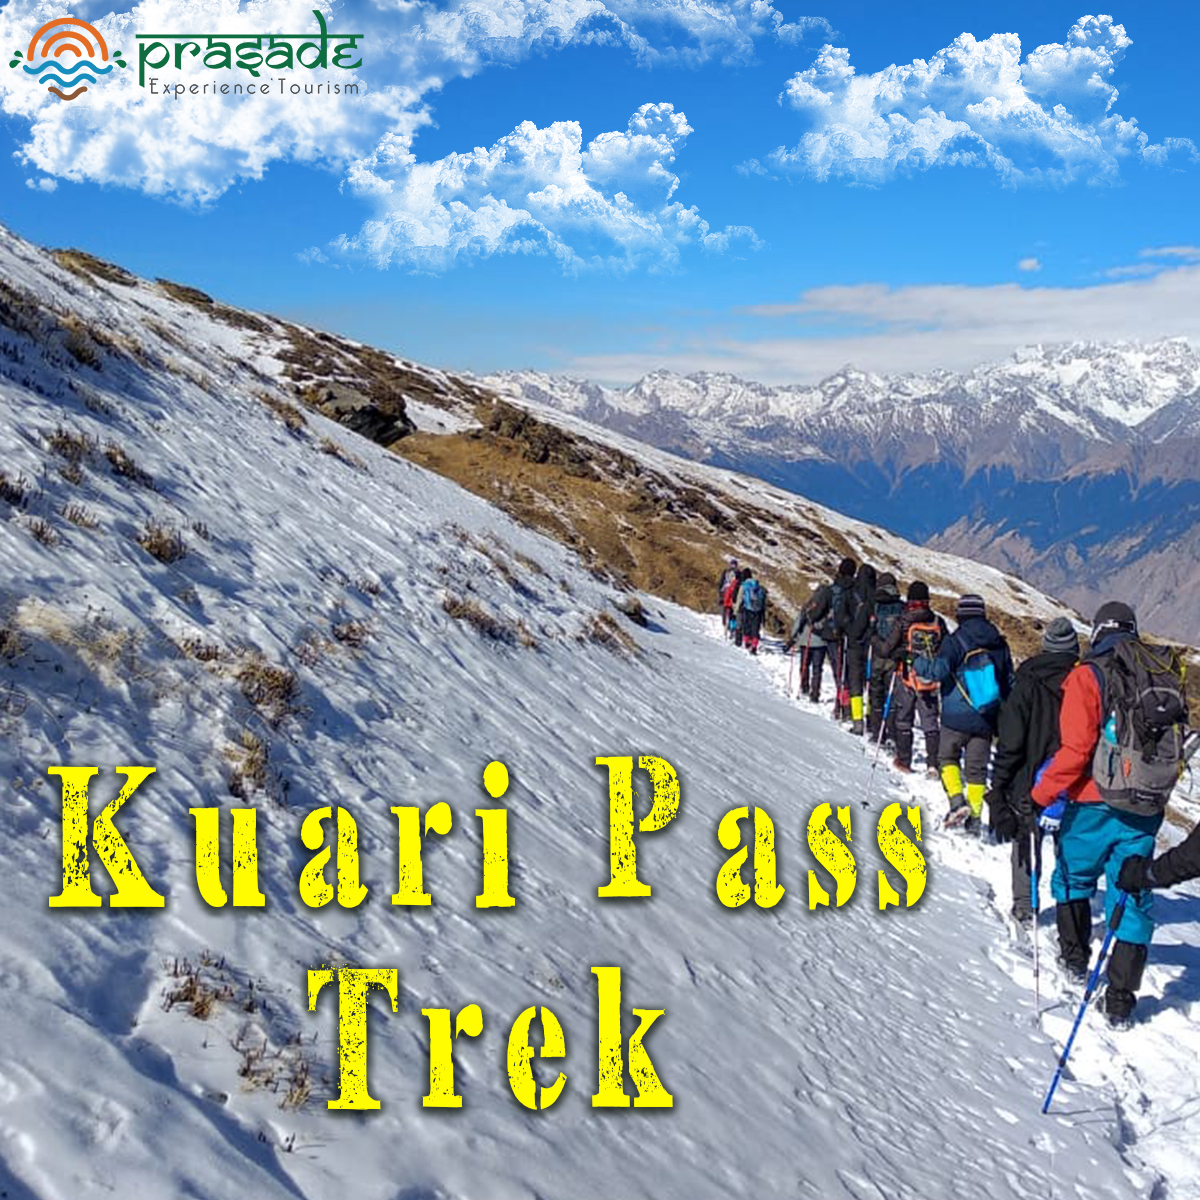 Hello Explorers!!! If you are stepping into Himalayas for the first time then Kuari Pass is the trek to do. It is almost crafted perfectly for the beginner. Let us know if you have visited here and share your experience!  #staysafeeveryone #Kuaripass #Kuaripasstrek #mountainhike https://t.co/NsX80yBWaQ